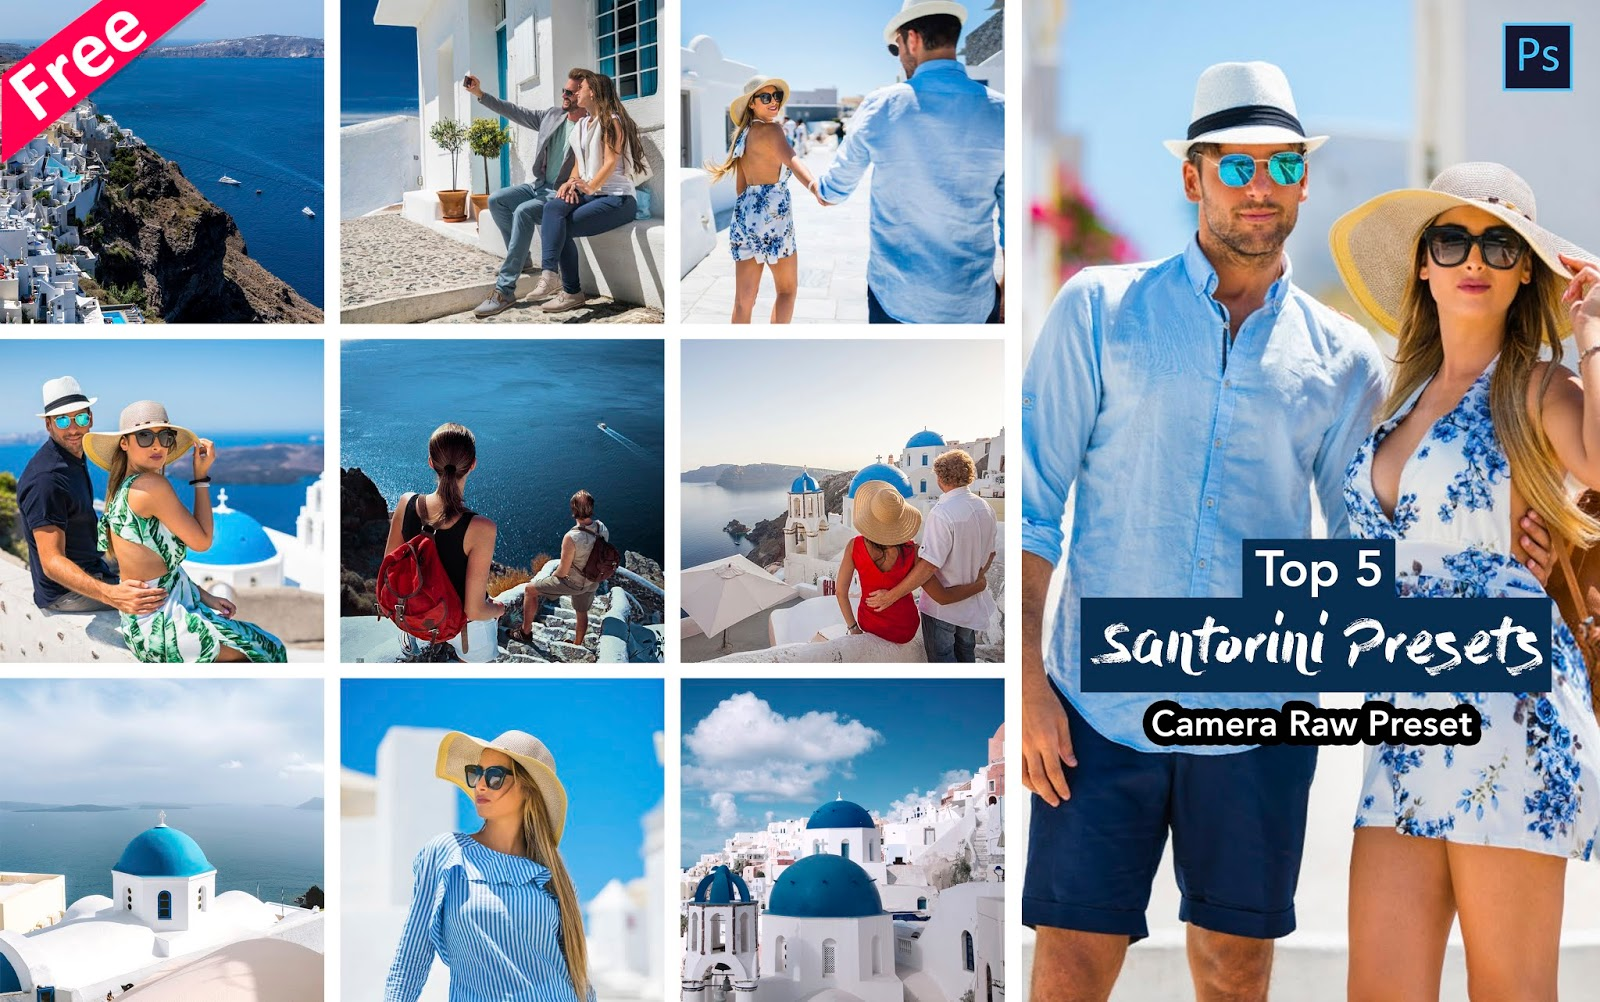 Download Top 5 Santorini Camera Raw Preset for Free | How to Edit Your Travel Photos Like in Photoshop